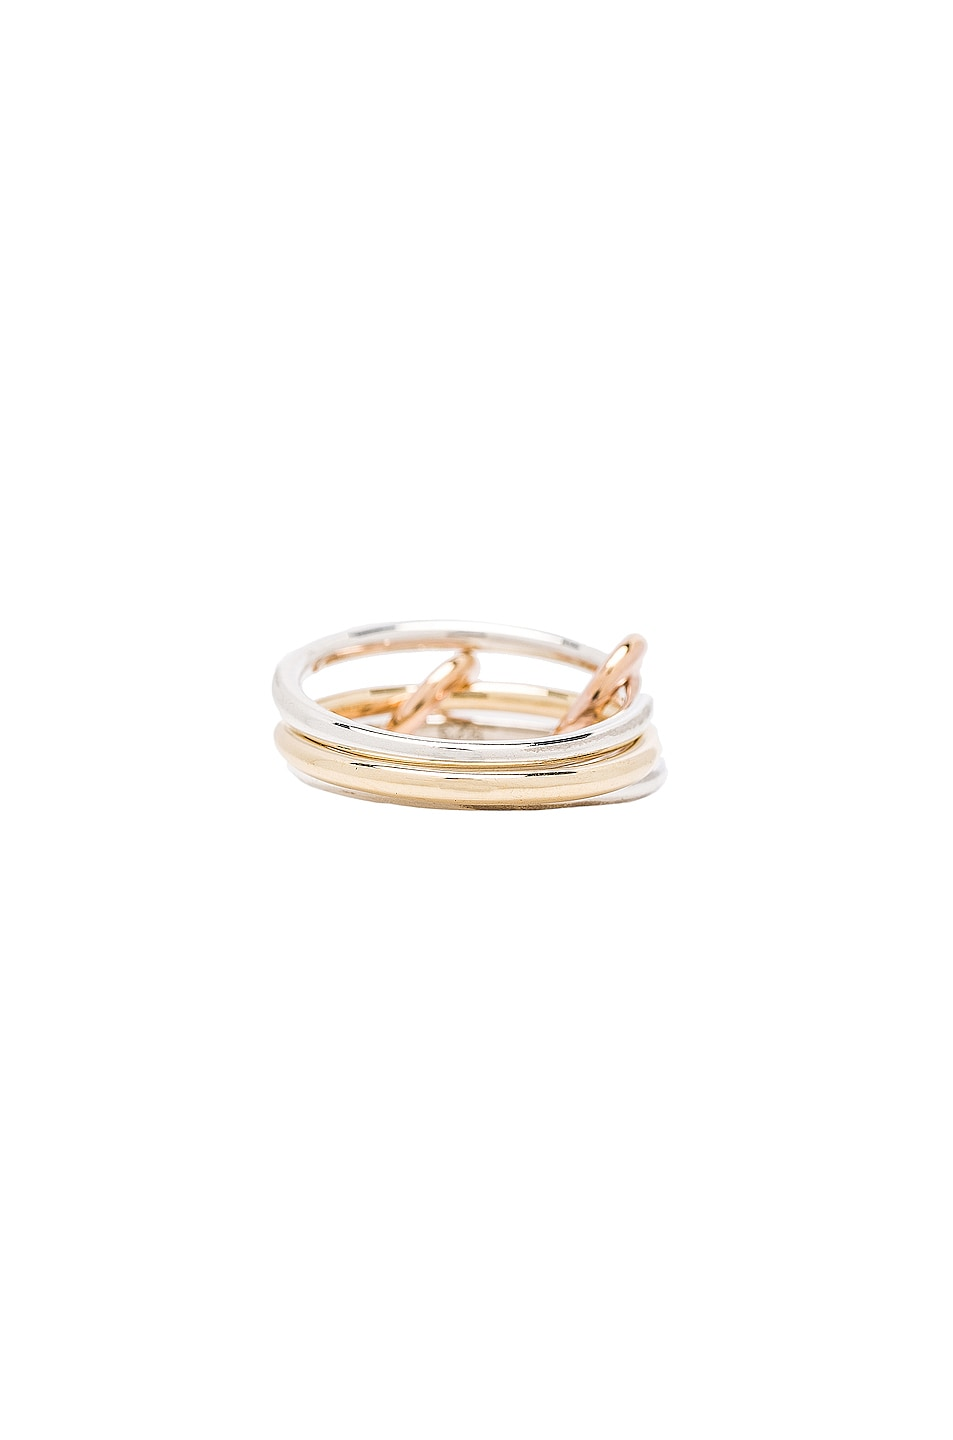 Image 4 of Spinelli Kilcollin Solarium Silver Ring in 18K Yellow Gold